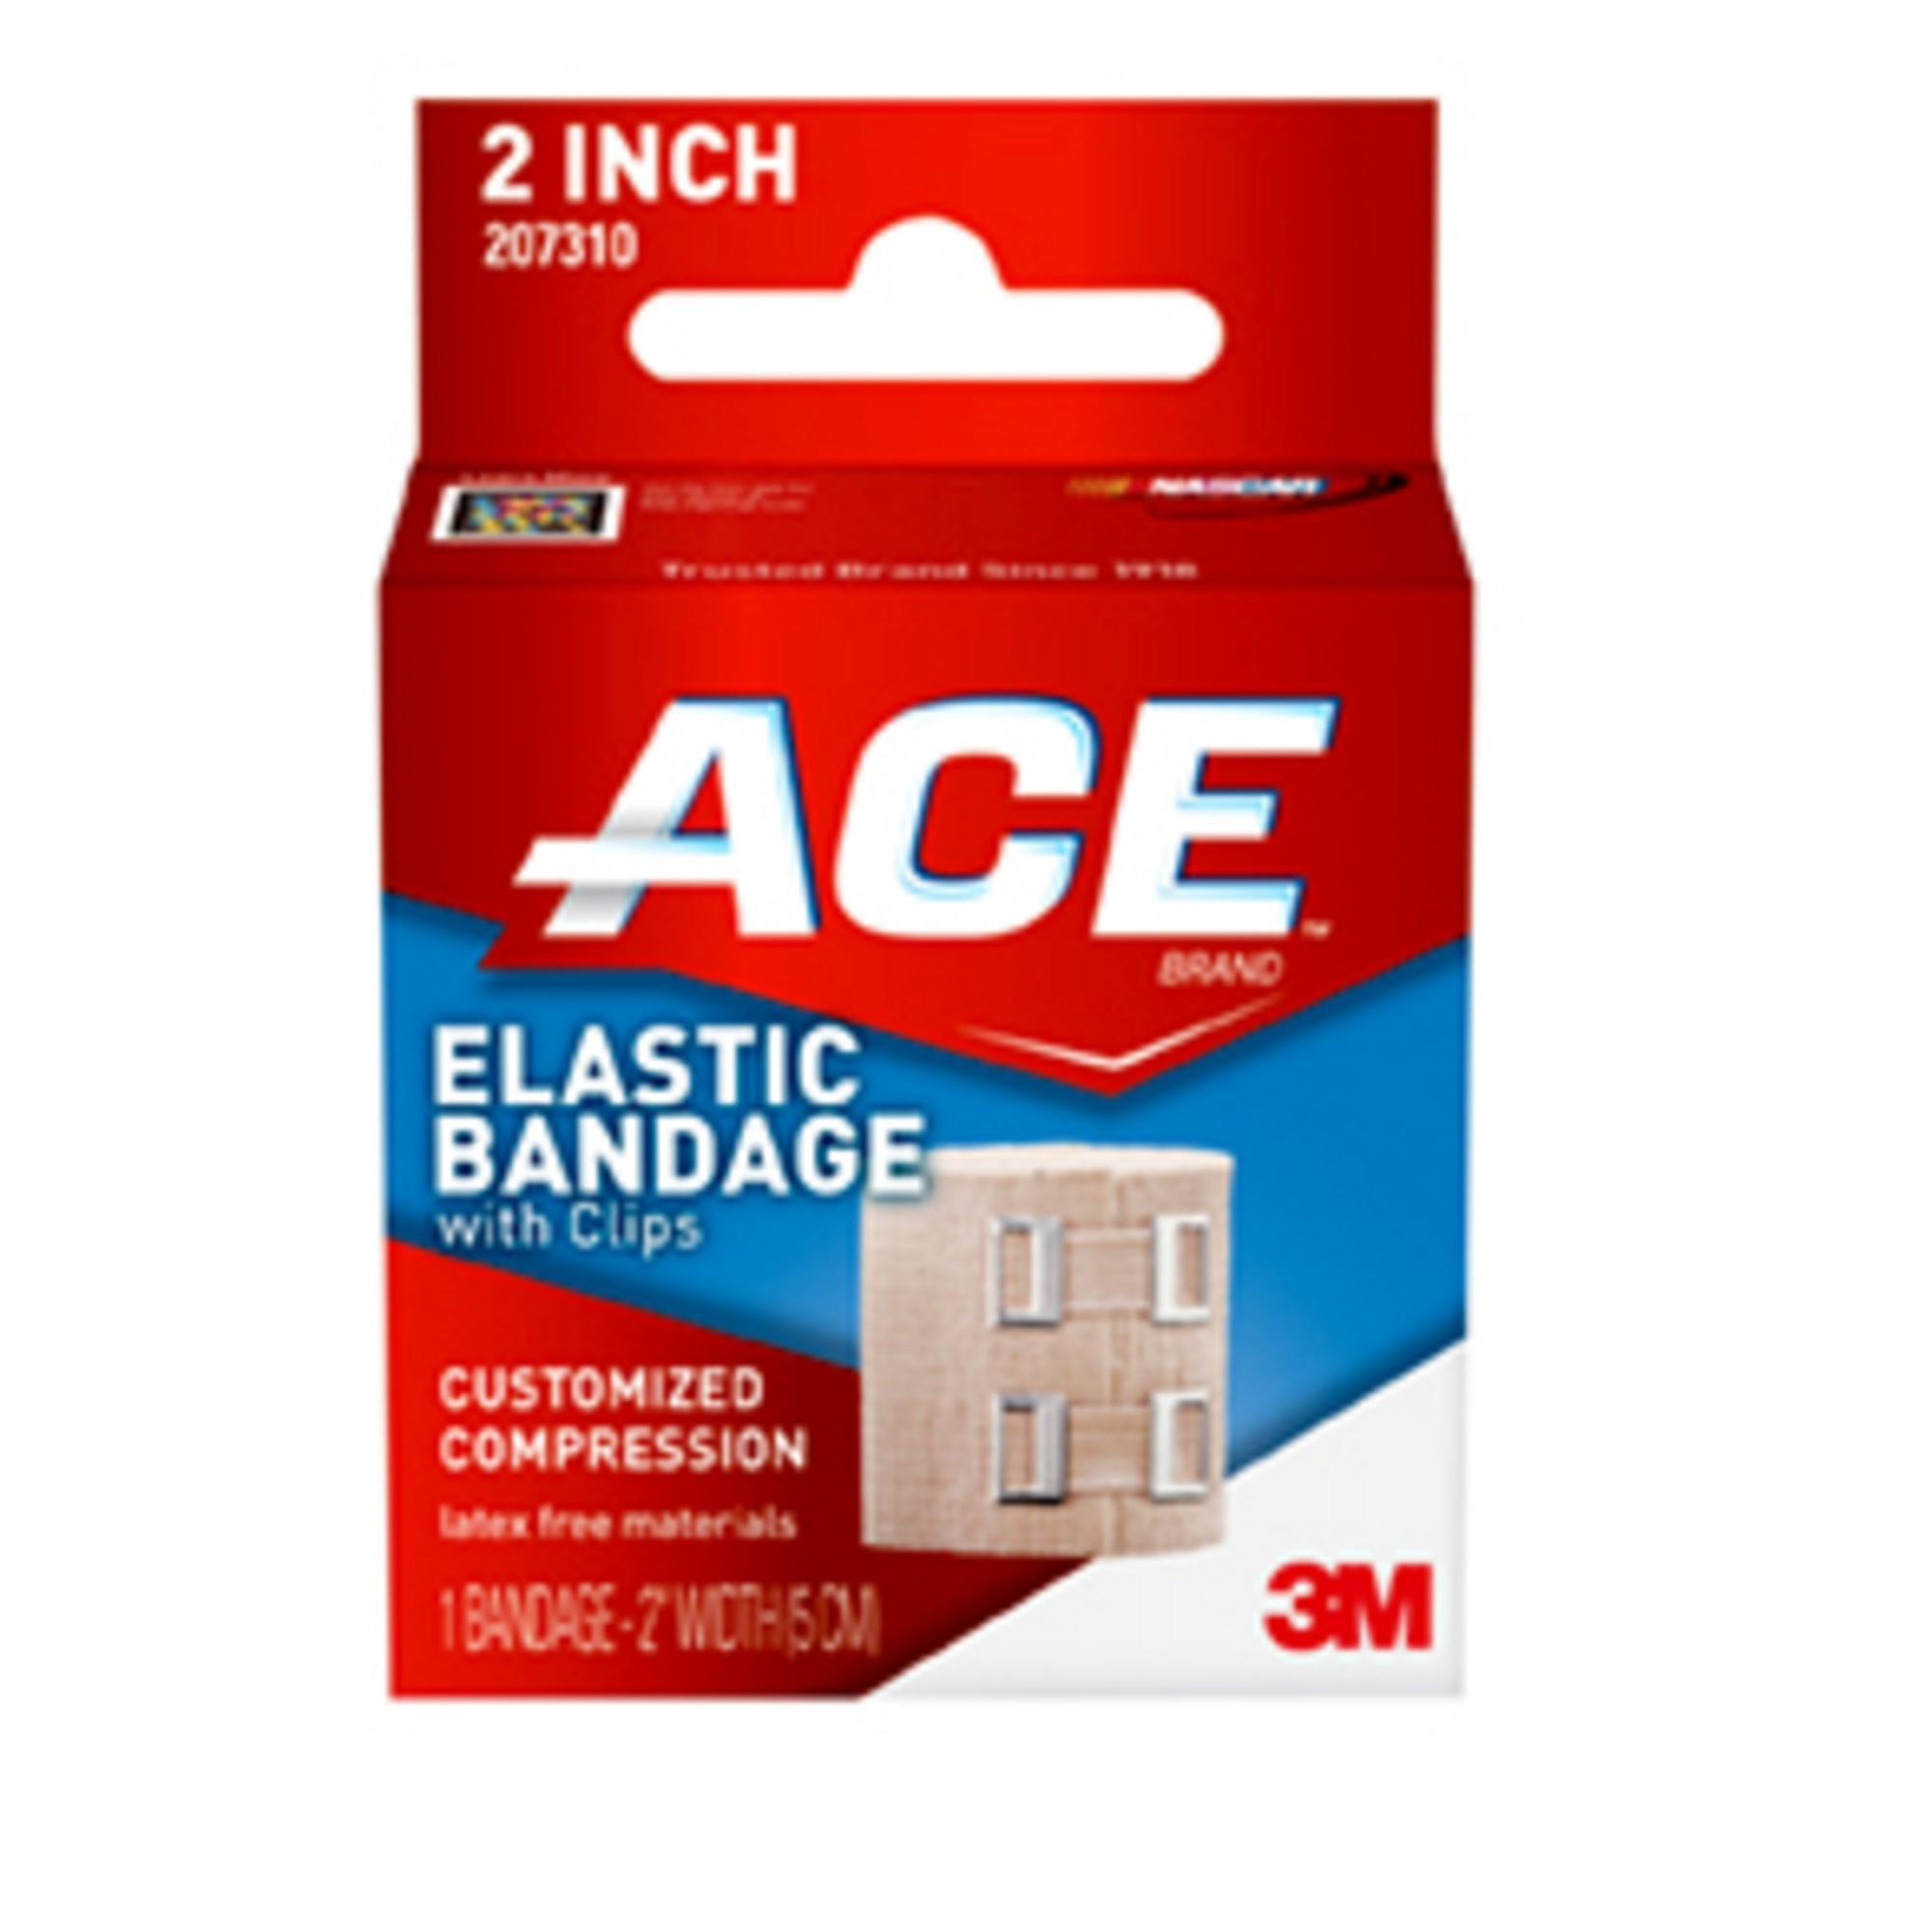 ACE Brand Elastic Bandage with Clips, 2 in., Beige, 1/Pack